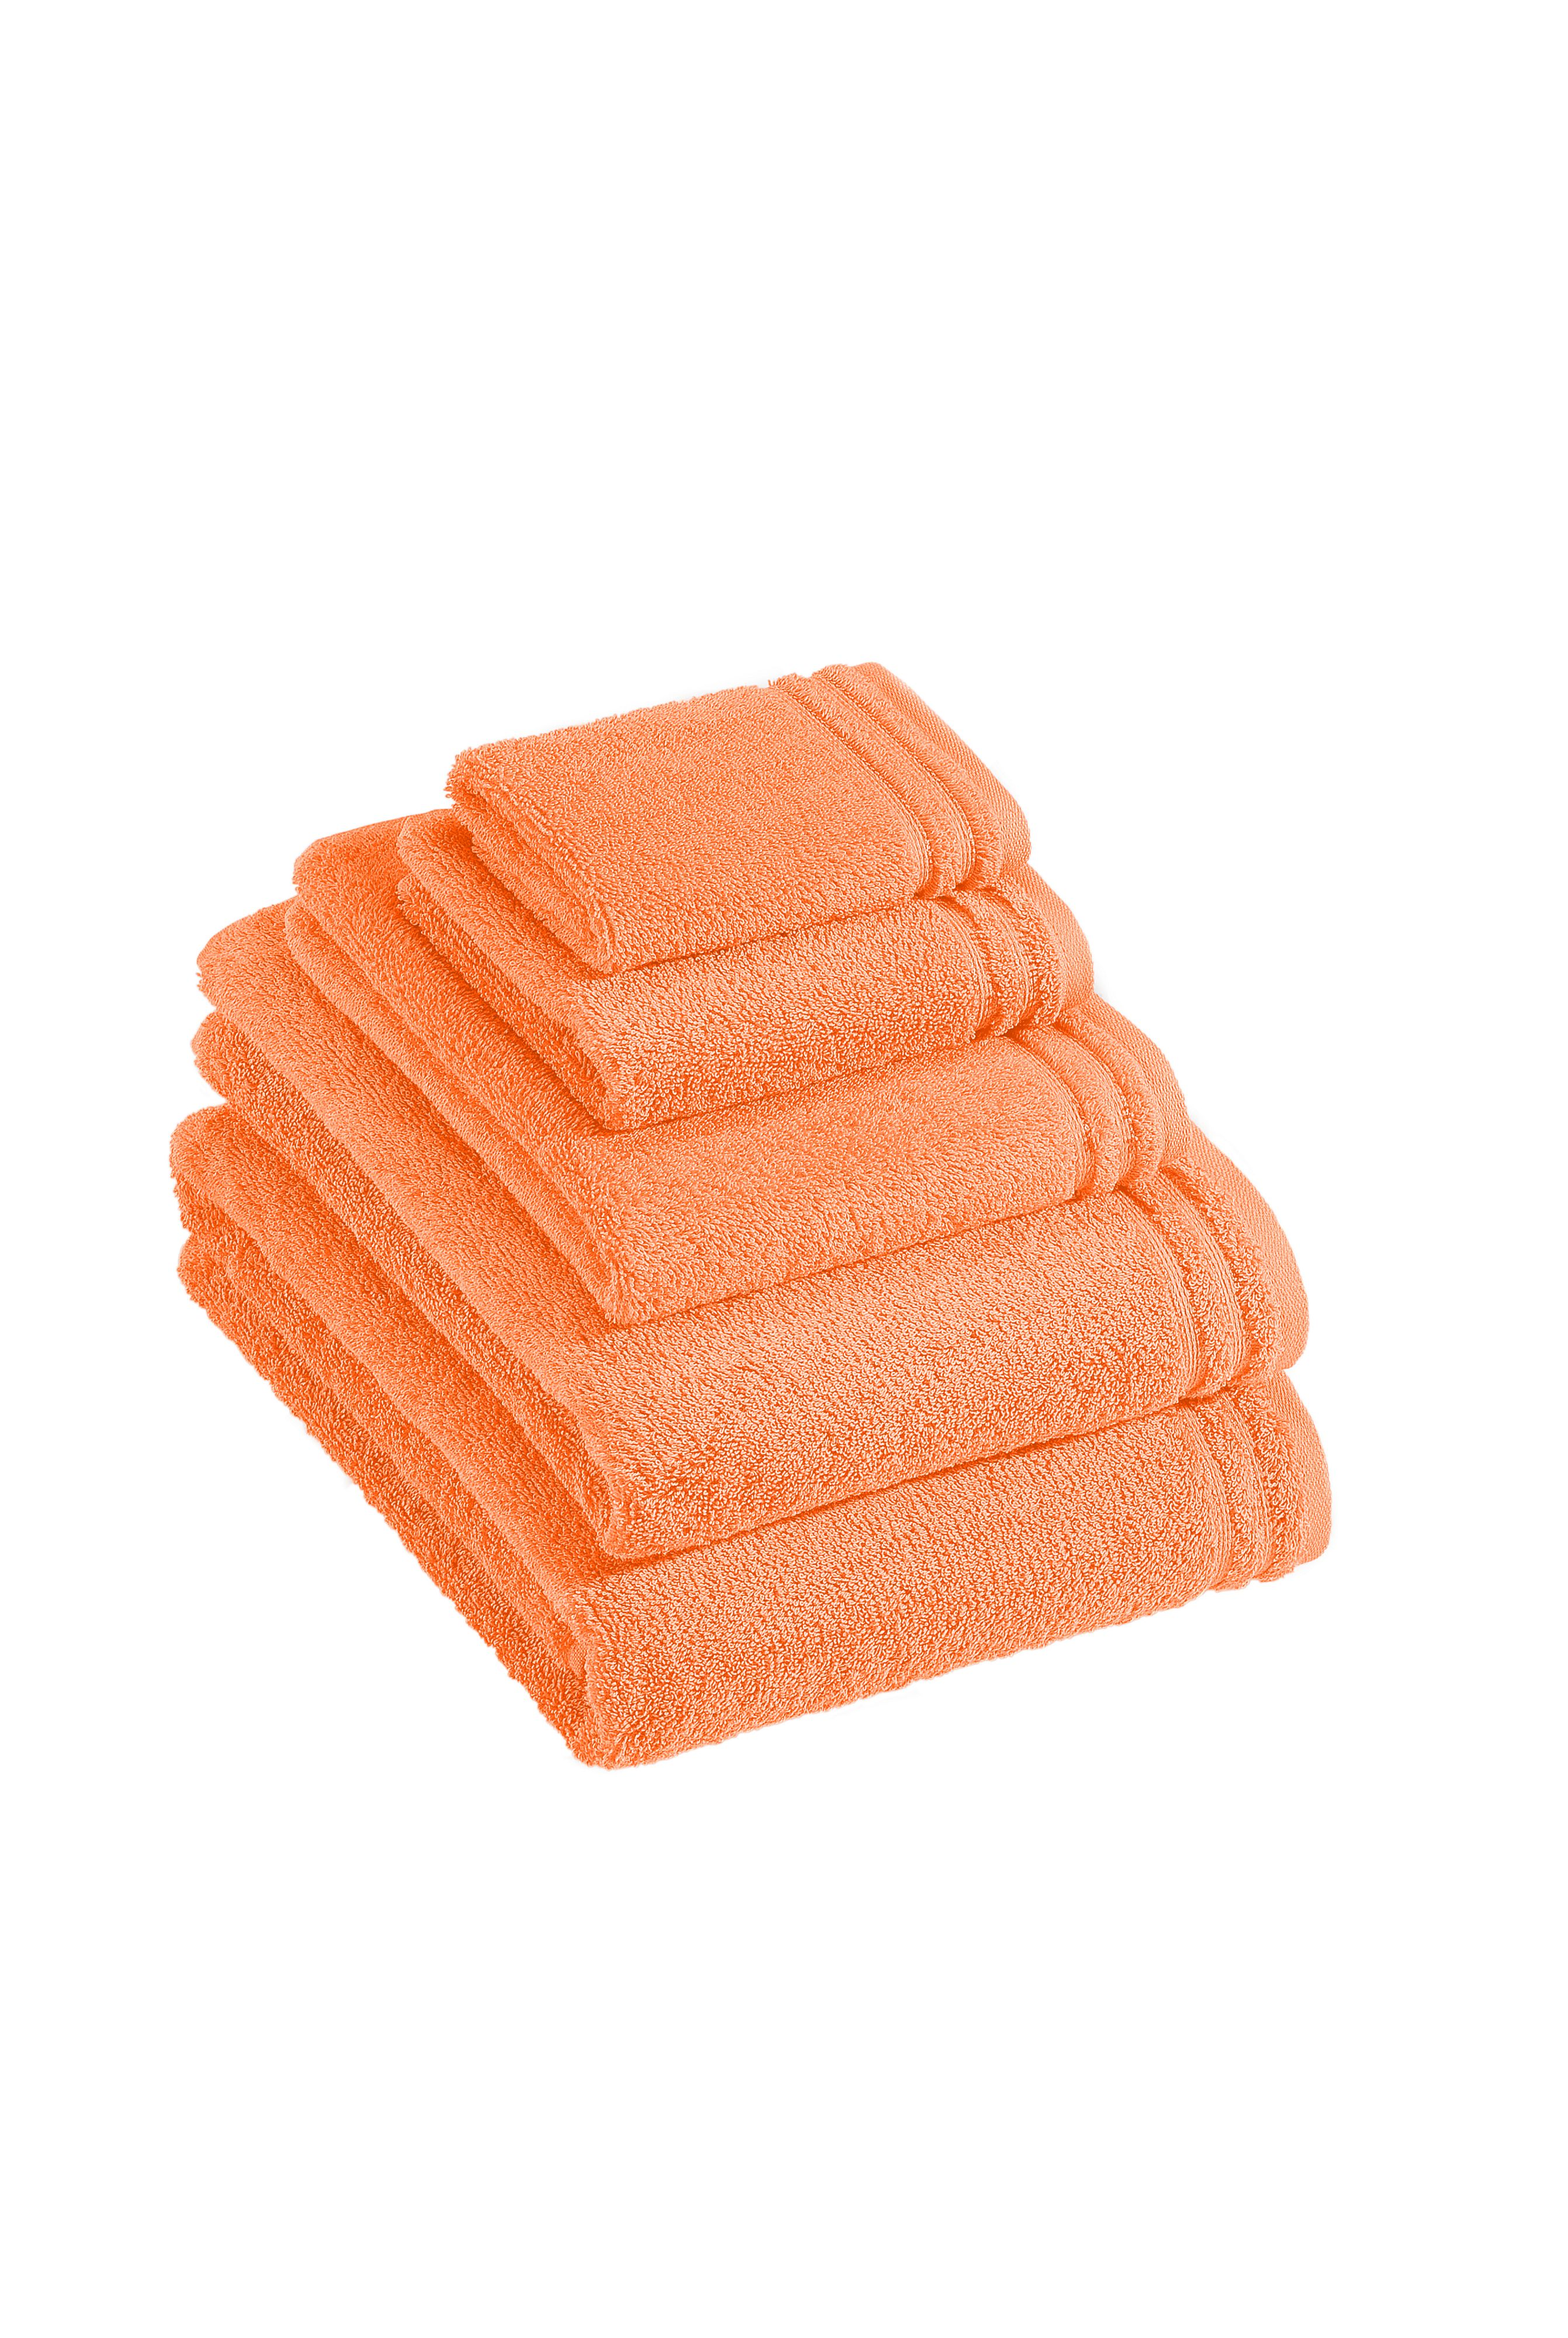 Calypso Feeling towel range in nectarine